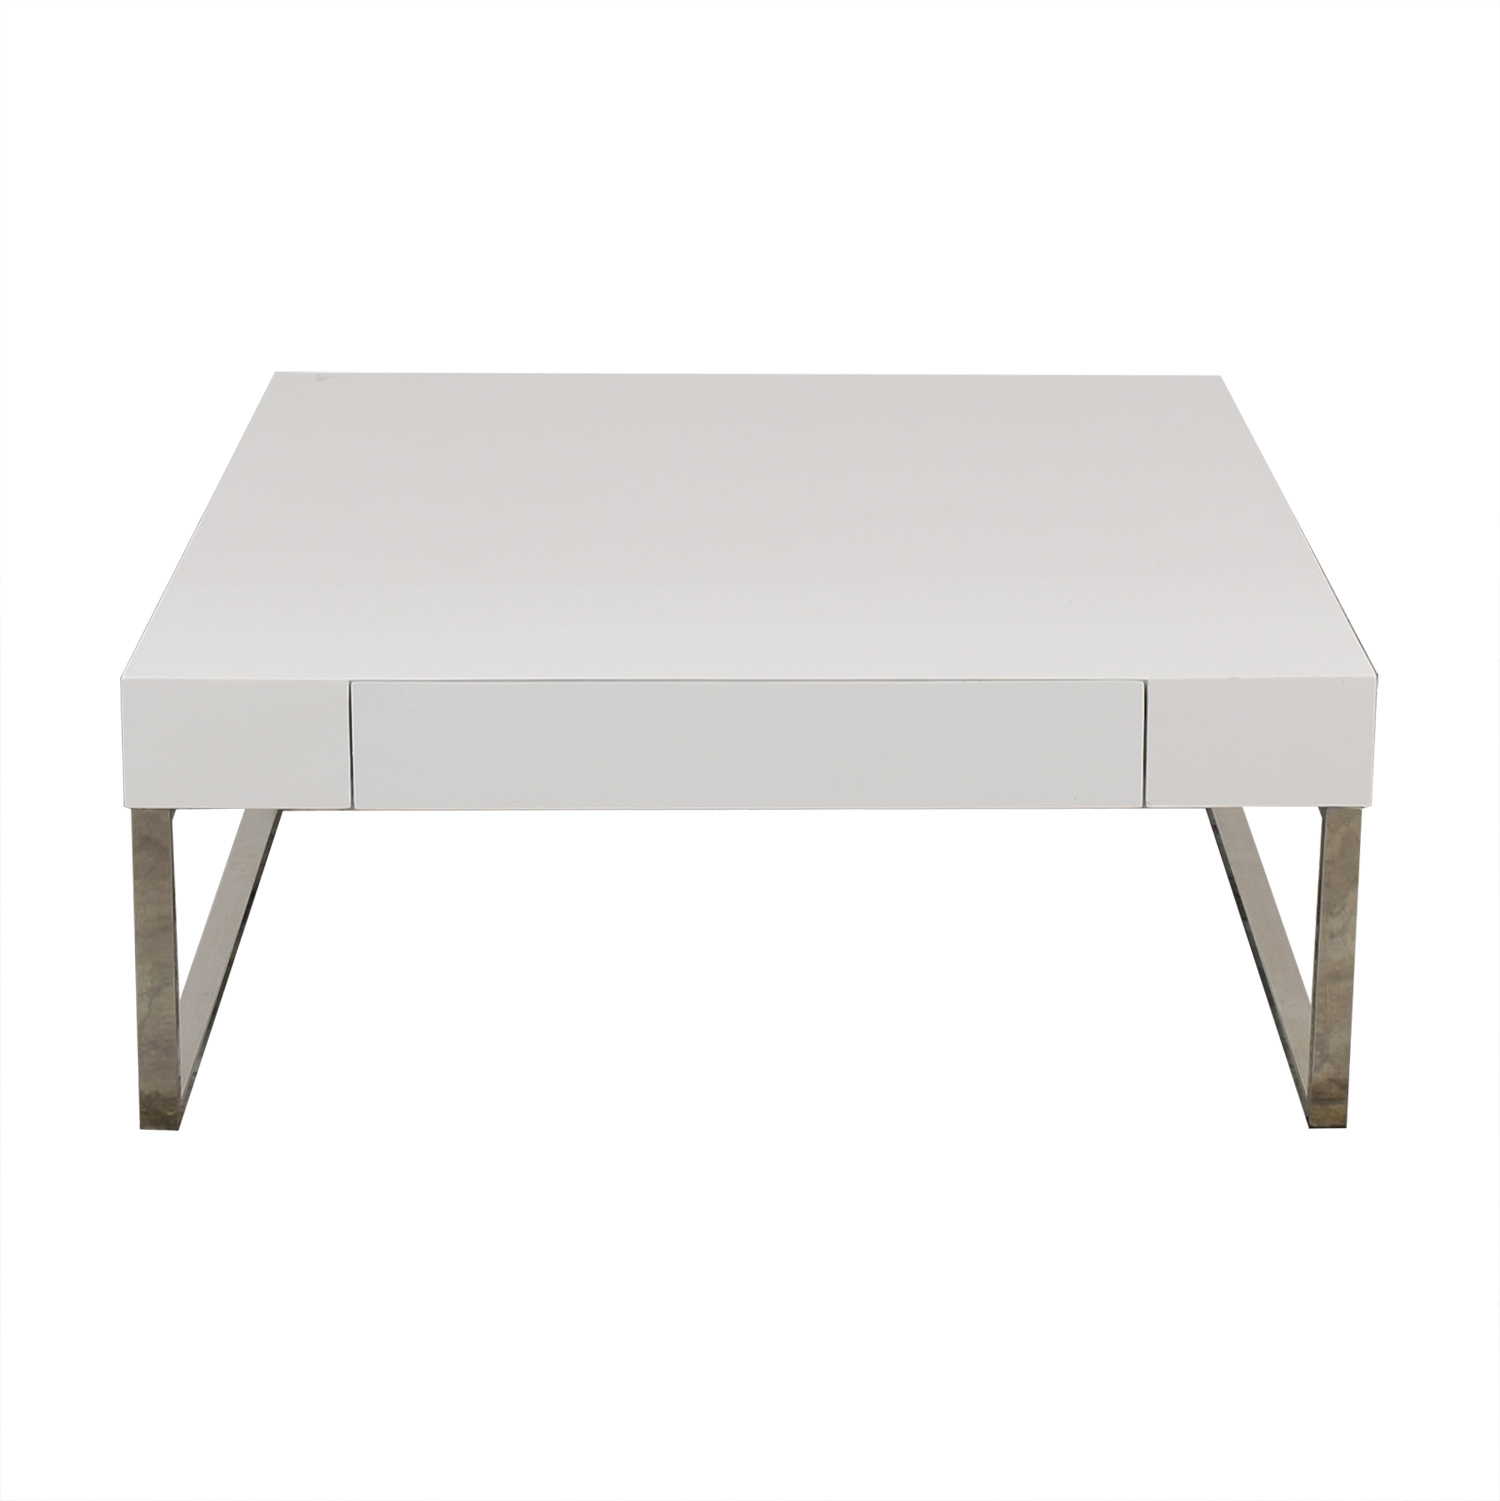 Modani Modani Gavino Coffee Table discount